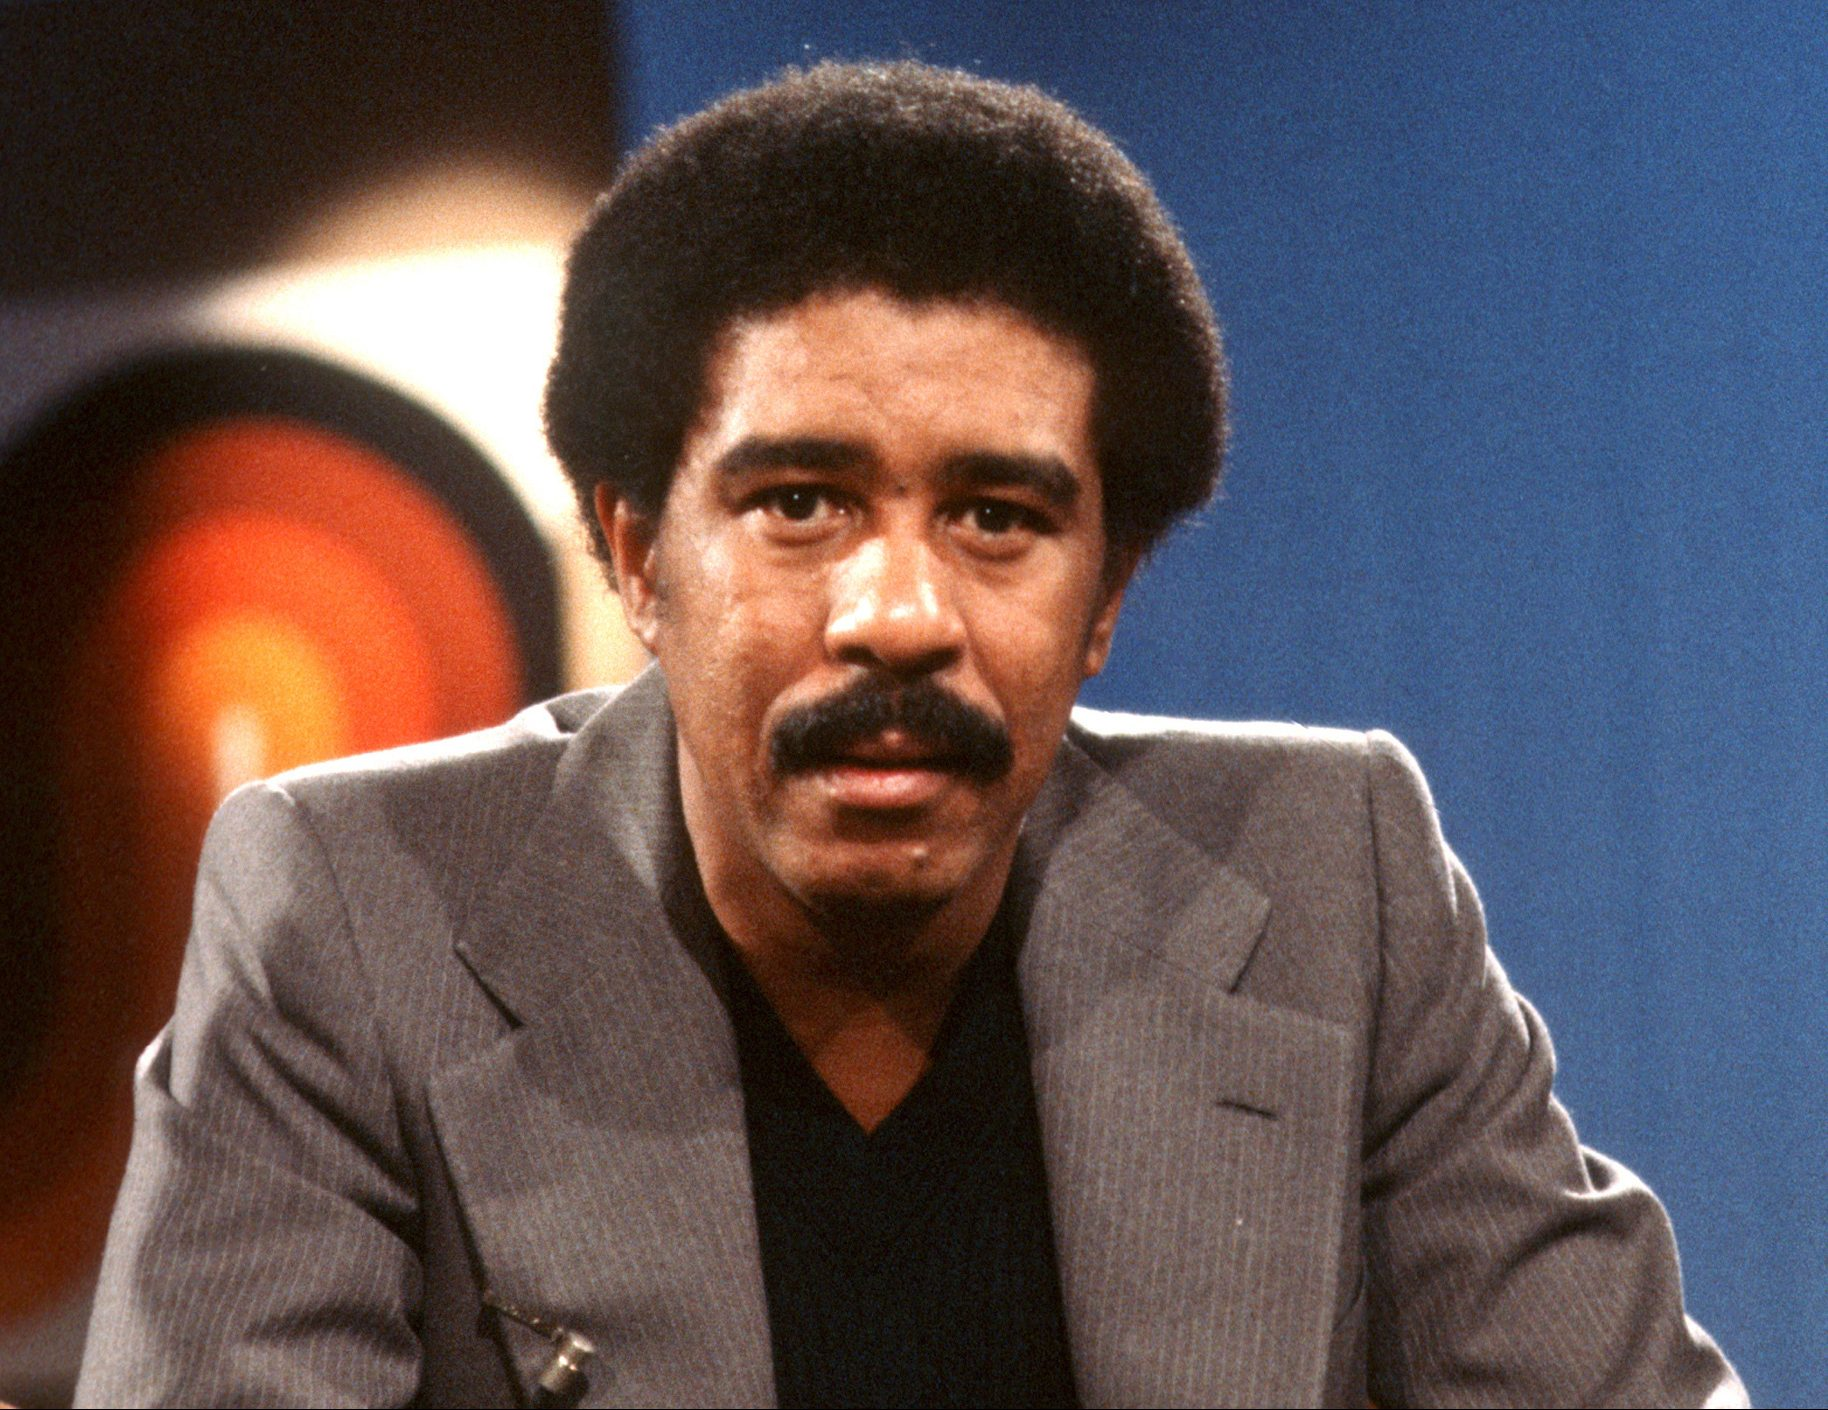 richard pryor2 e1607680641500 20 Things You Might Not Have Known About Richard Pryor